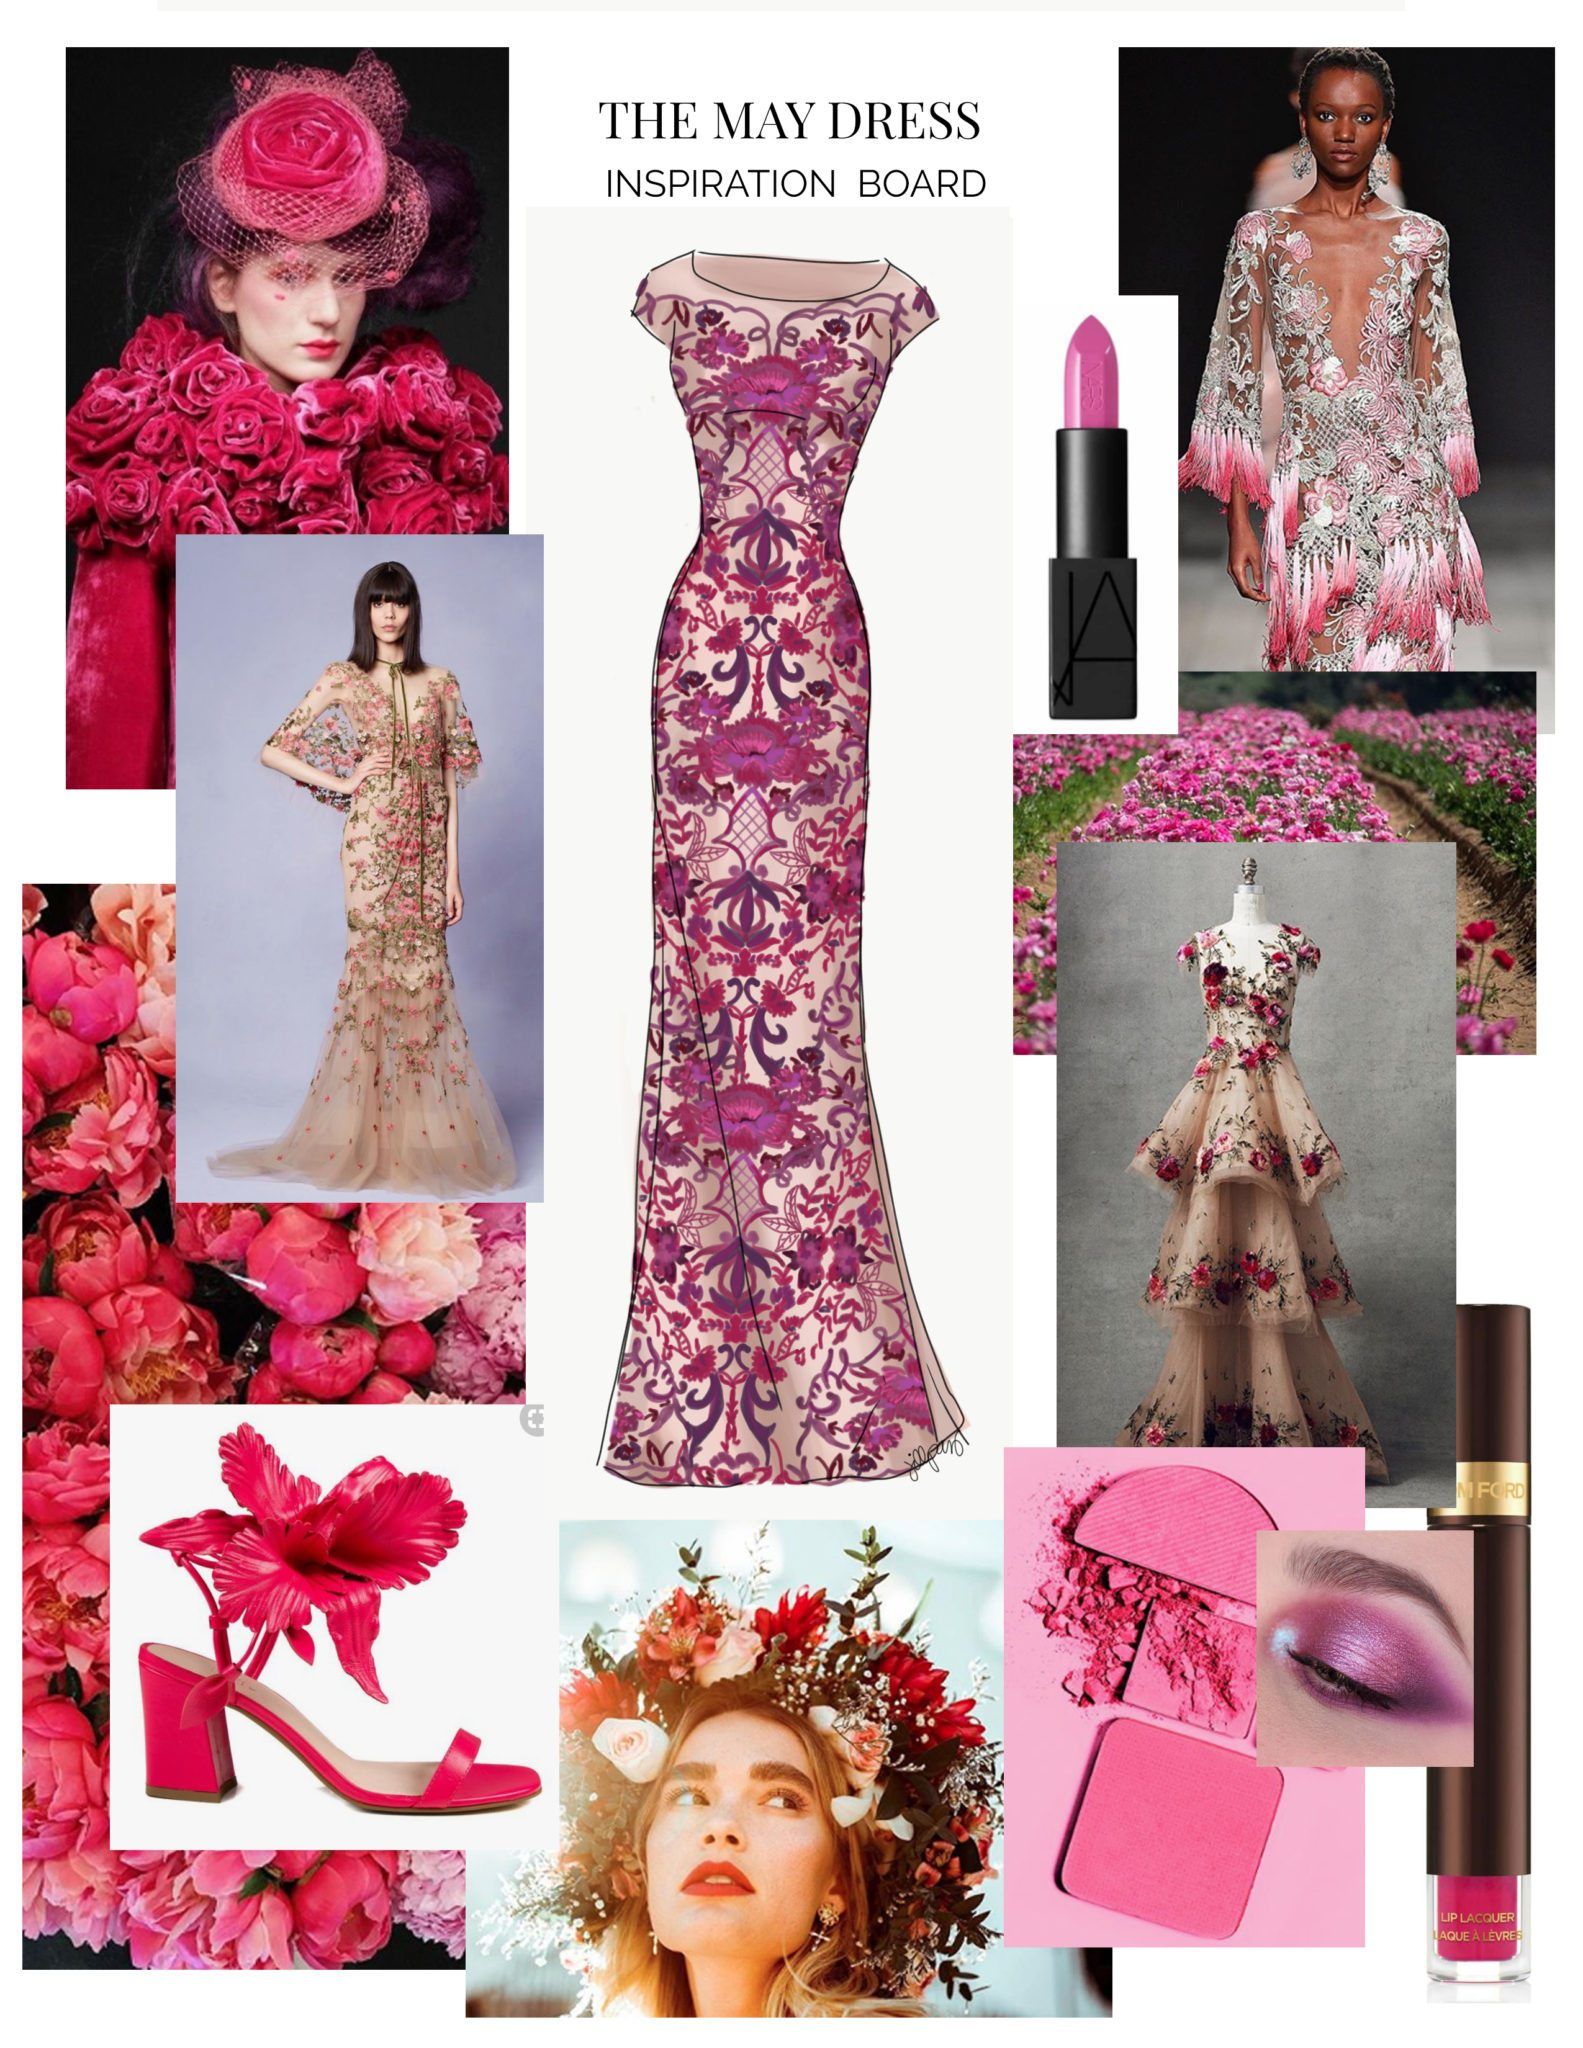 Inspiration board for The May Dress by Leanne Barlow